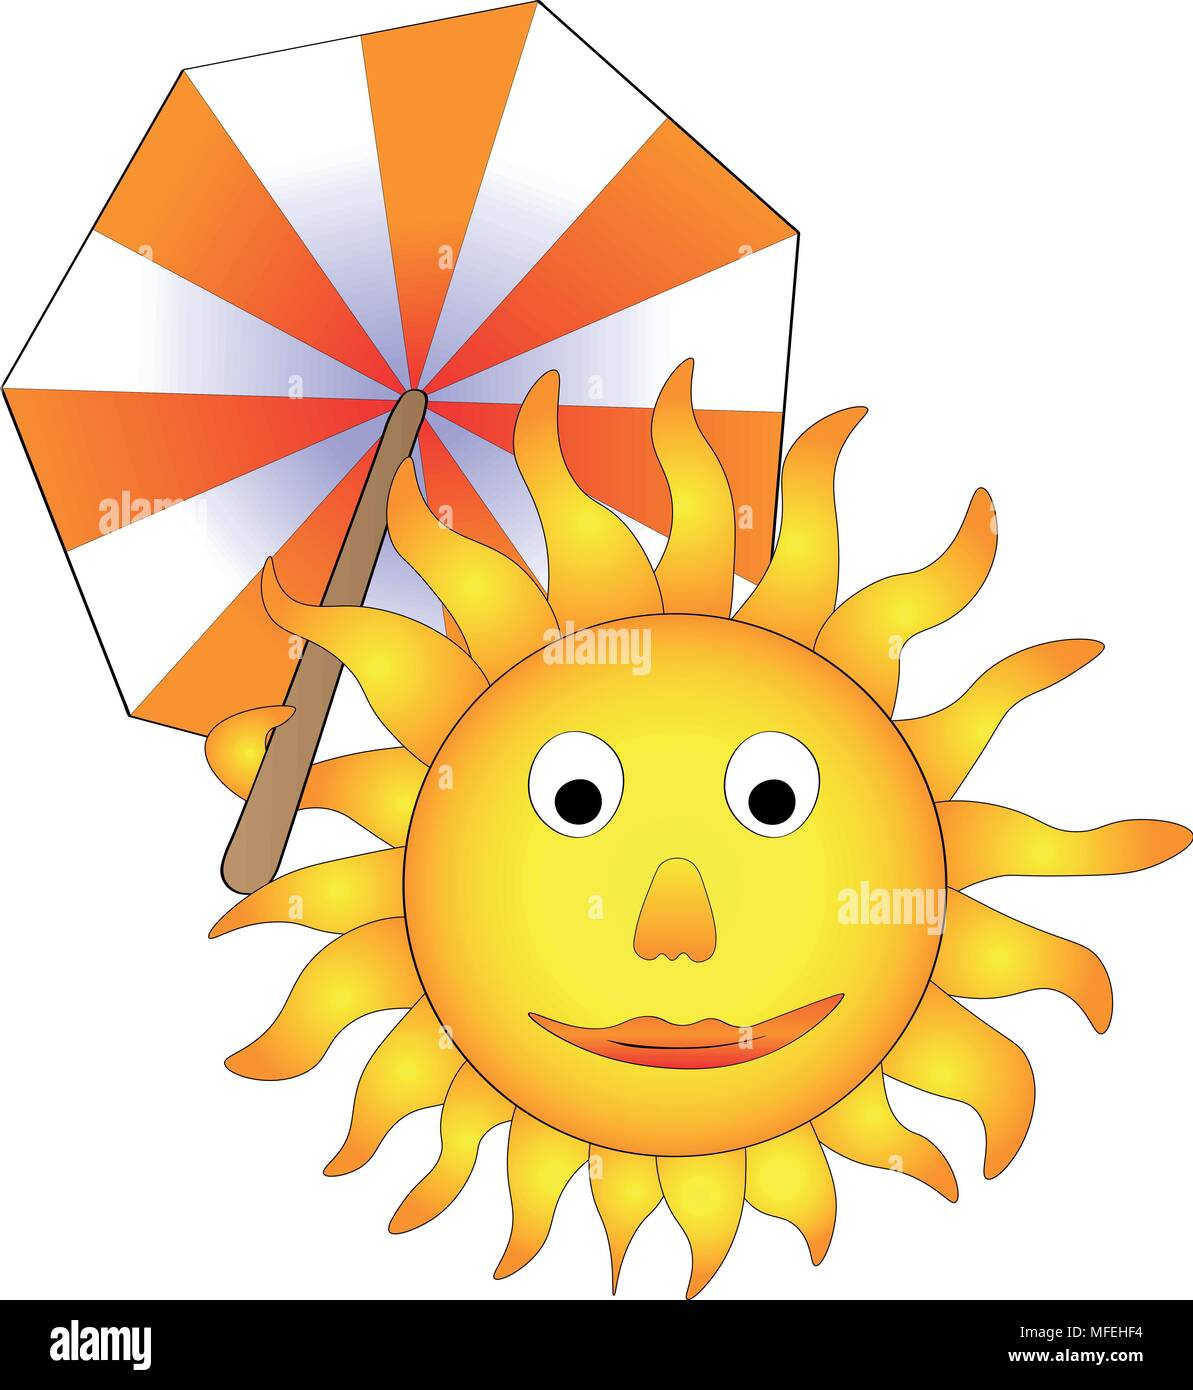 Vector illustration, happy smiling sun with parasol, funny concept of summer's coming - Stock Vector